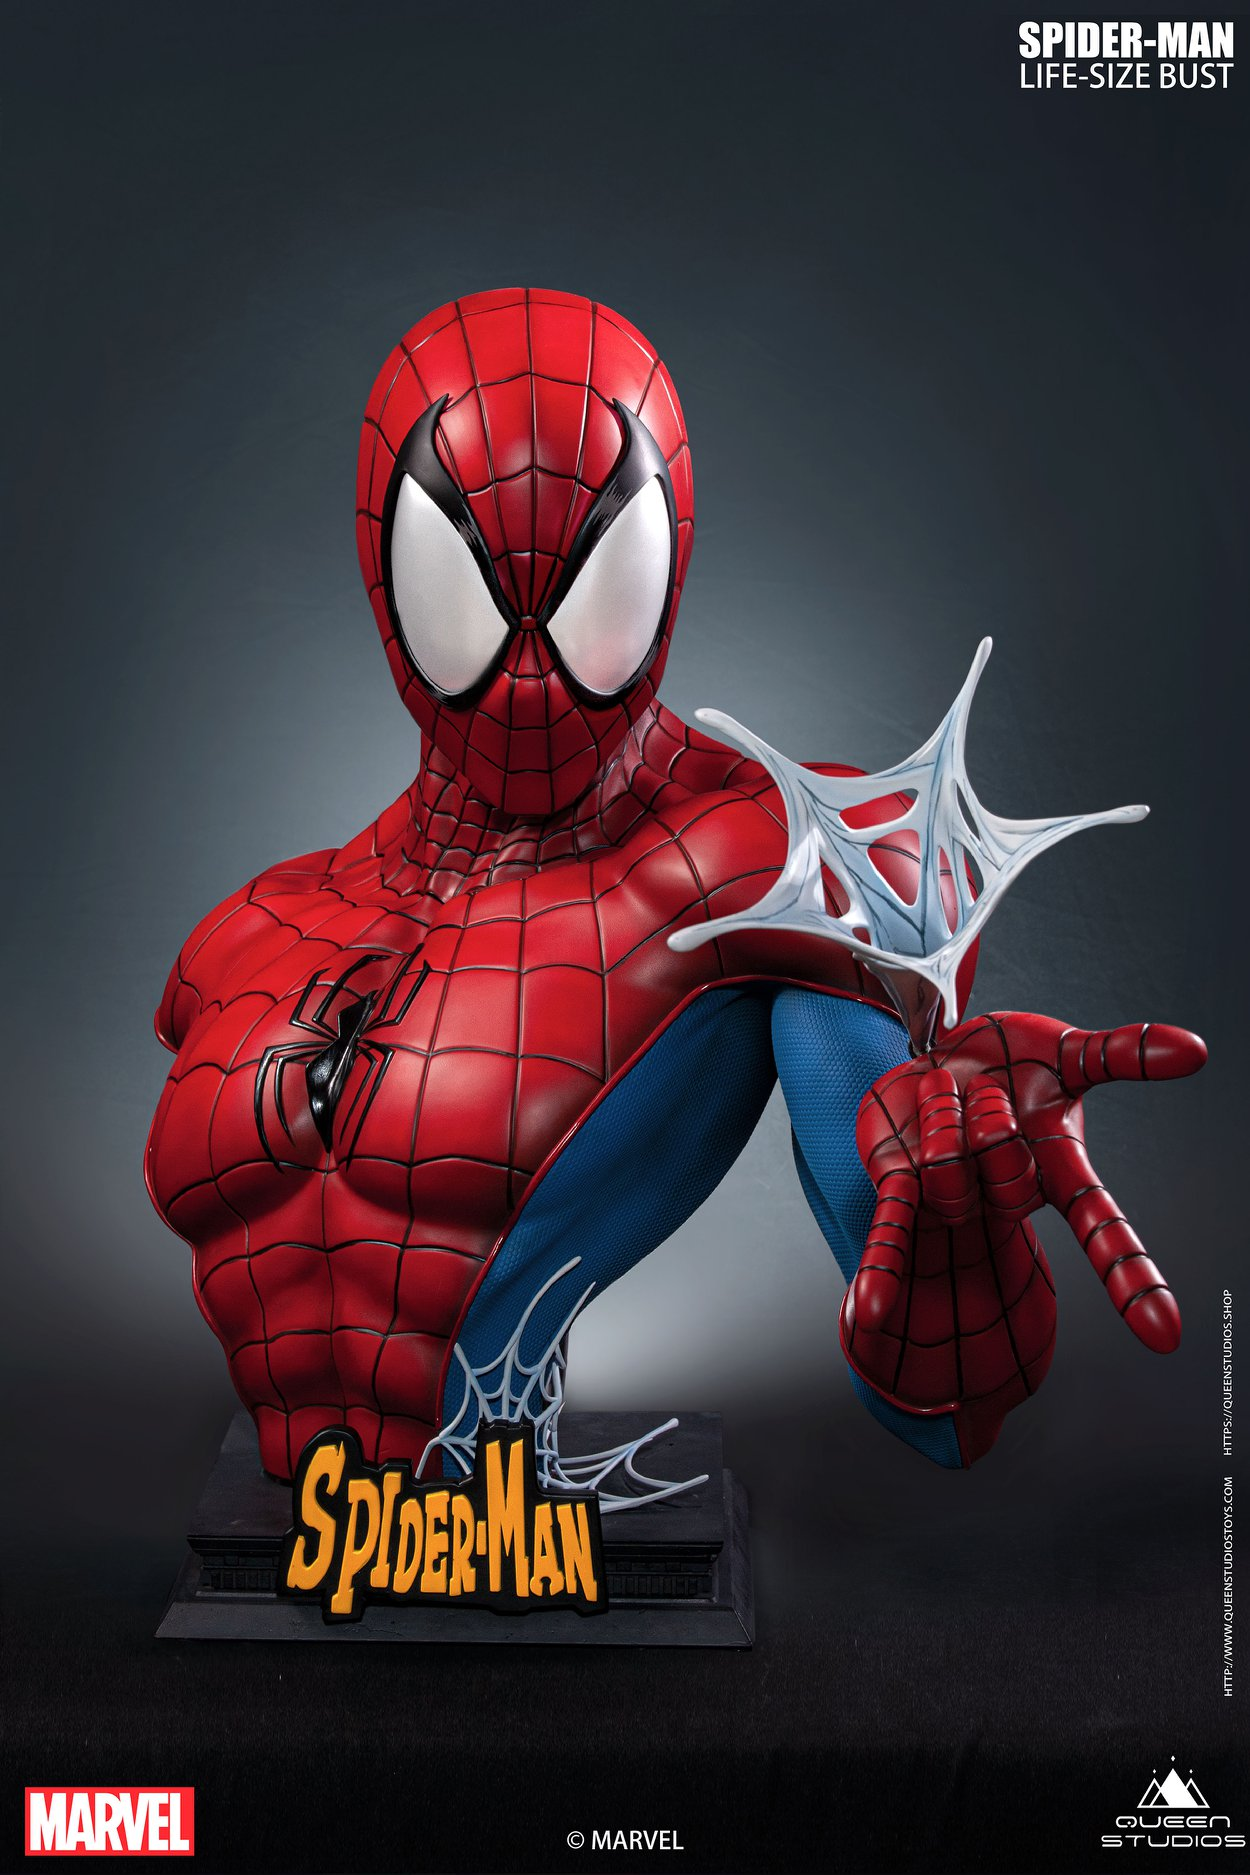 Link a Spider-Man_Life_Size_Bust_Comic_Marvel_Queen_Studios-3